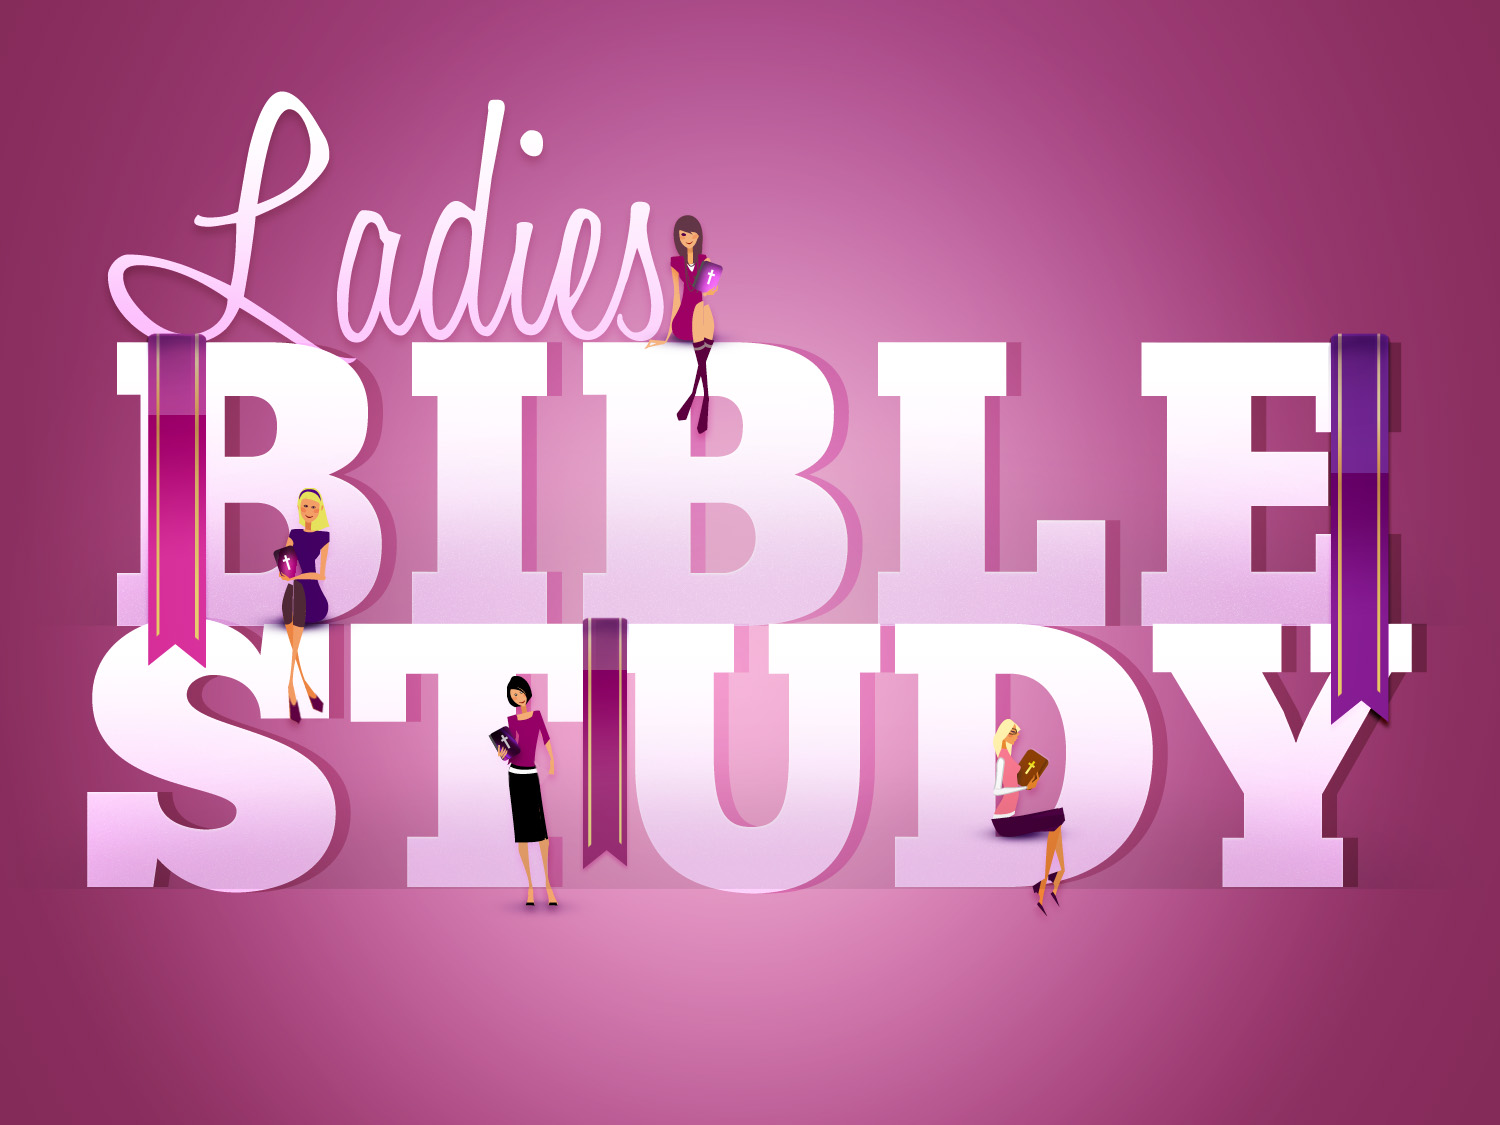 Bible clipart youth bible study. Netherwood park church of